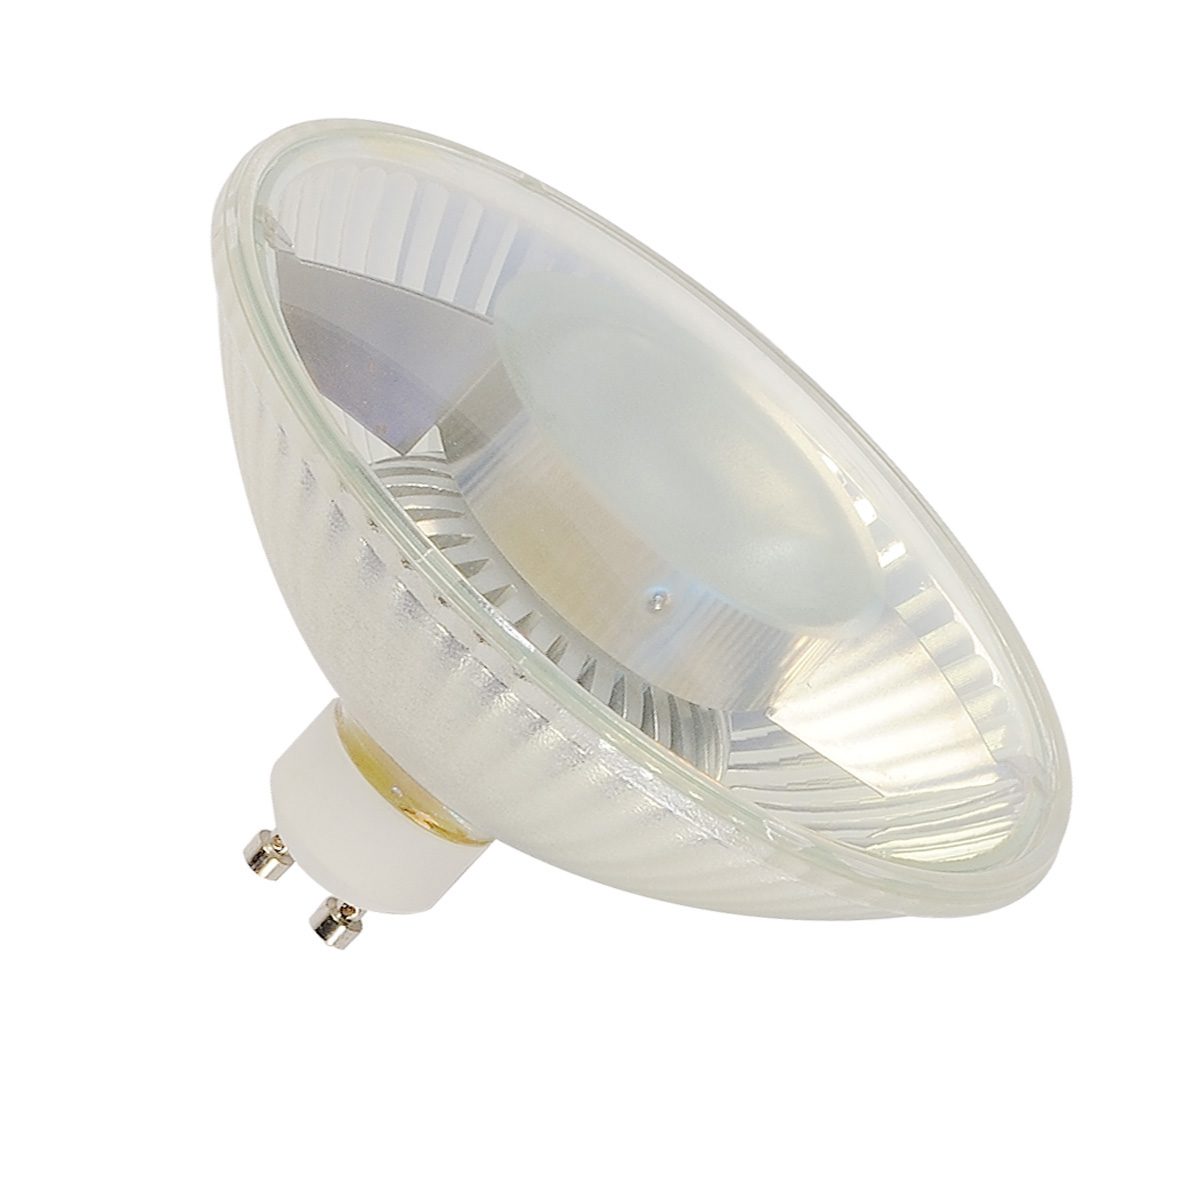 COB LED Retrofit, QPAR111, 6W, E27, 3000K, 38°, 3 step dim